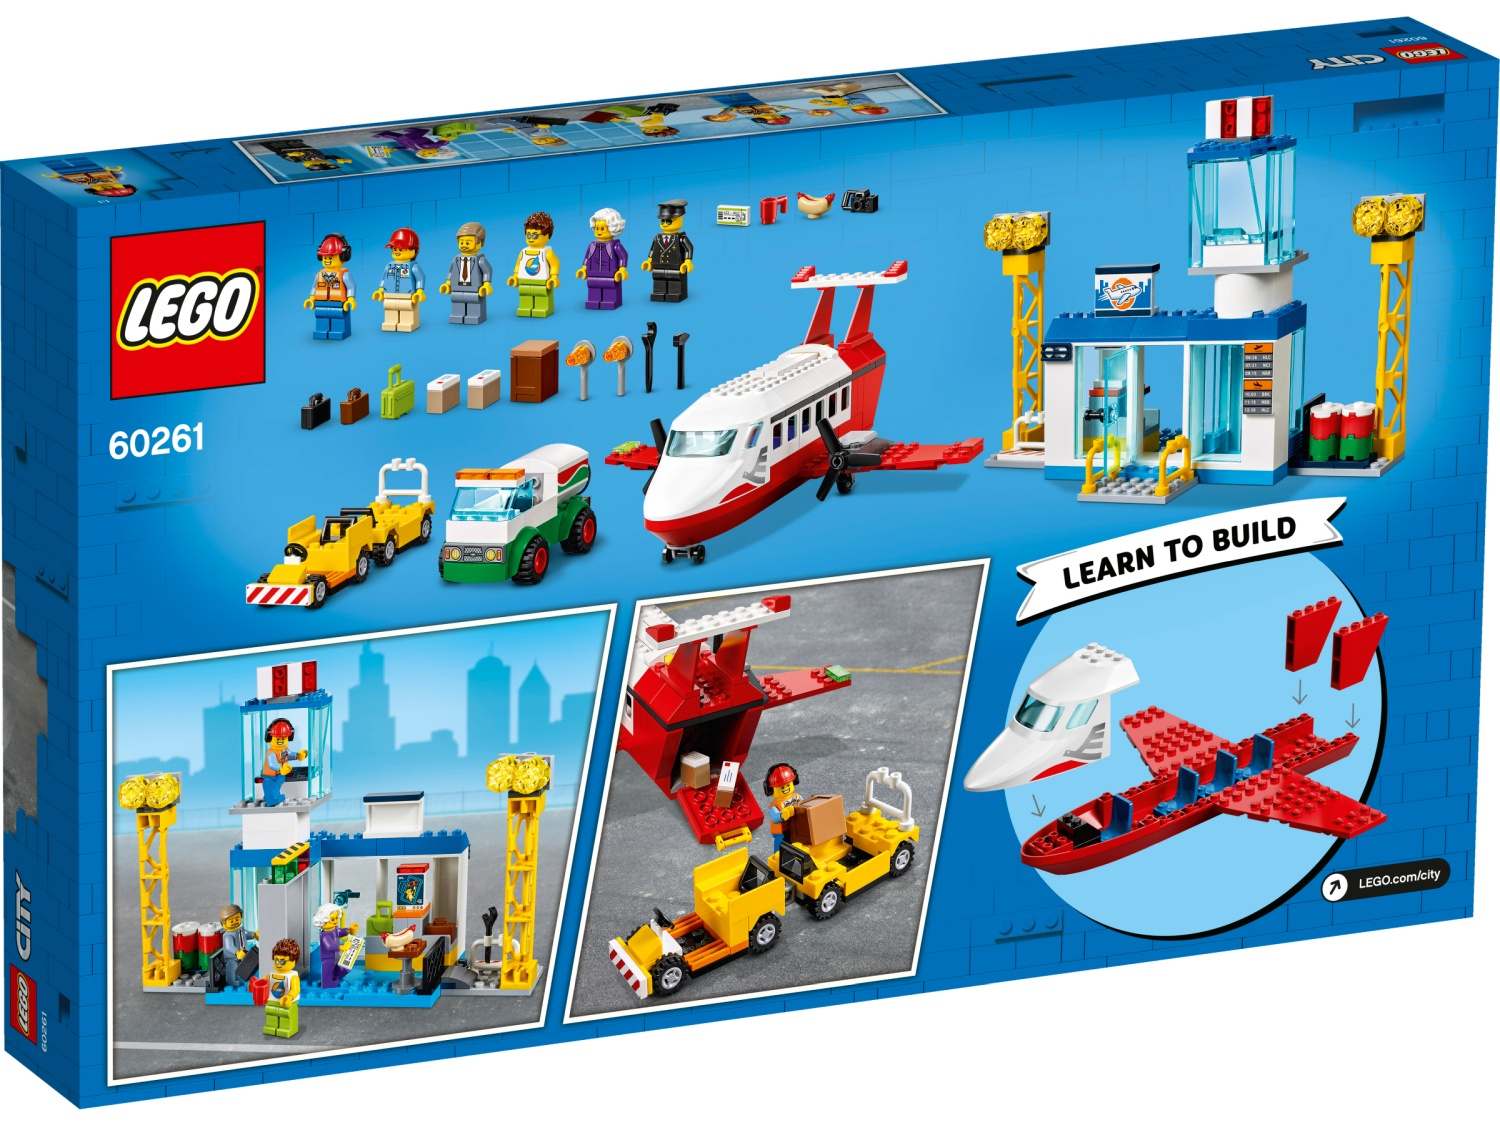 LEGO City Summer 2020 Official Set Images - The Brick Fan